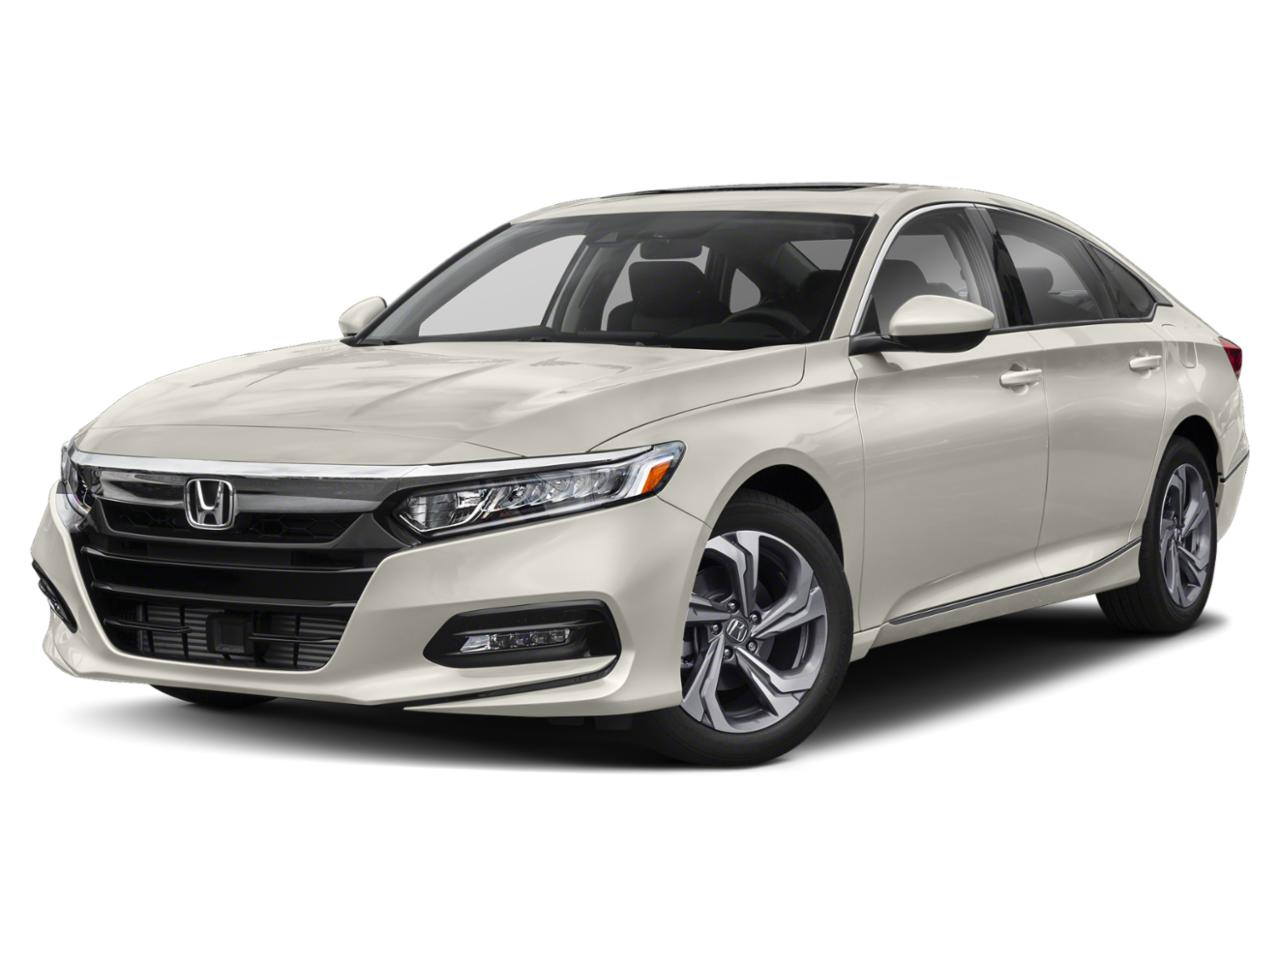 2020 Honda Accord Sedan EX 1.5T 4dr Car Slide